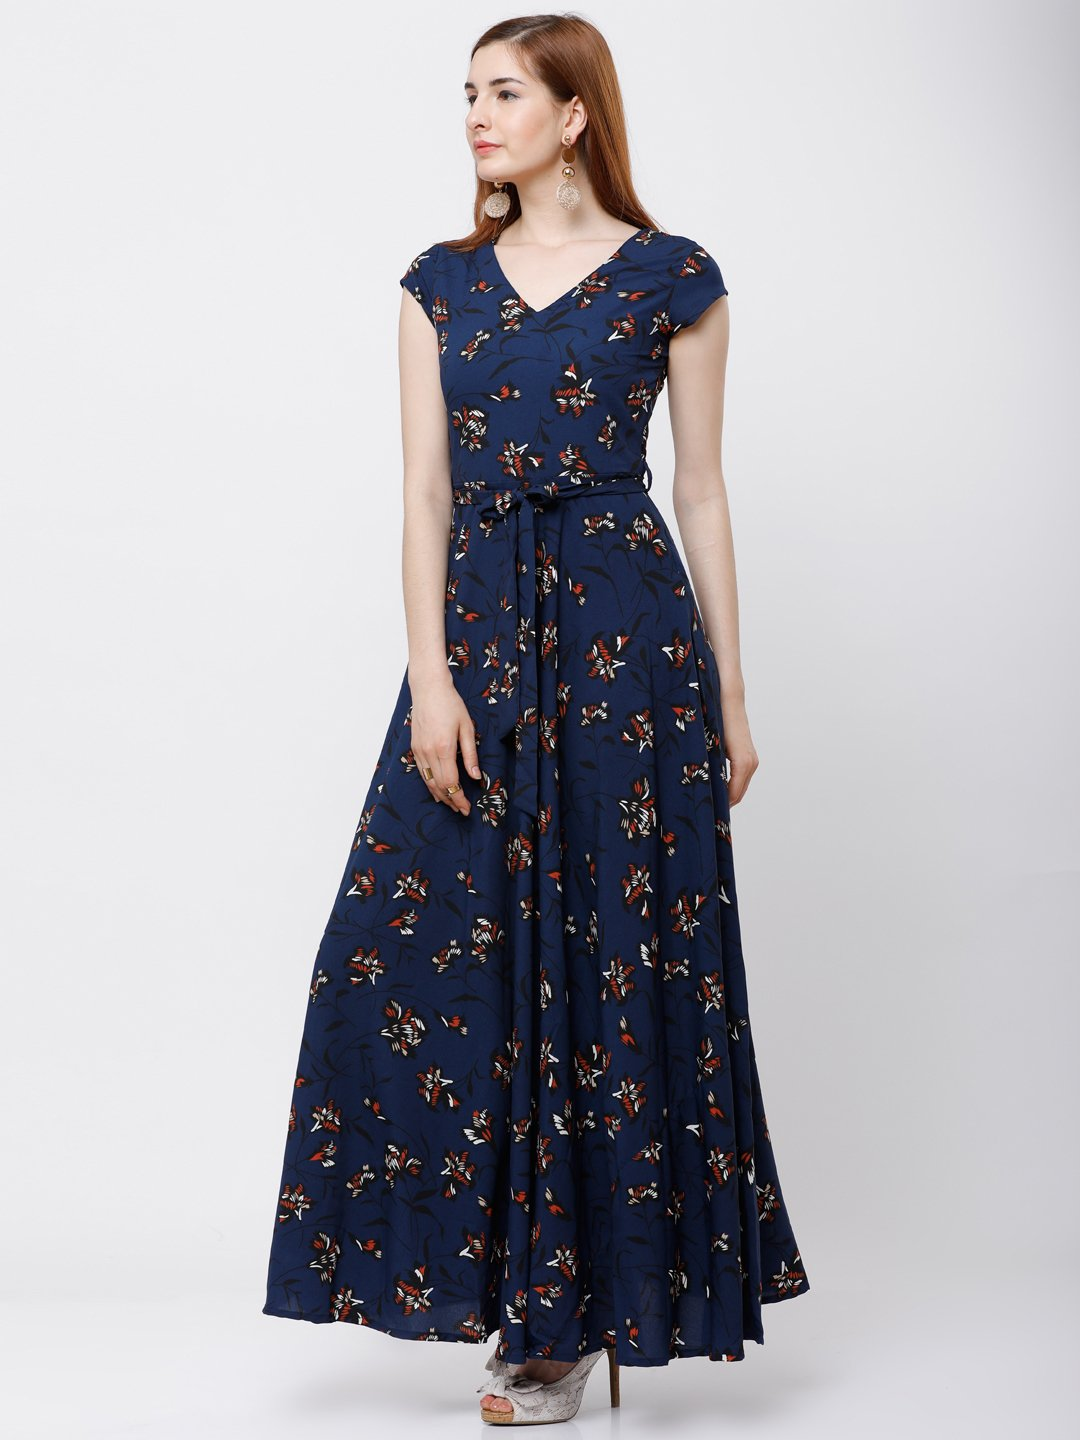 c40da9d29e2 10 Maxi Dresses For You To Beat The Heat In This Summer